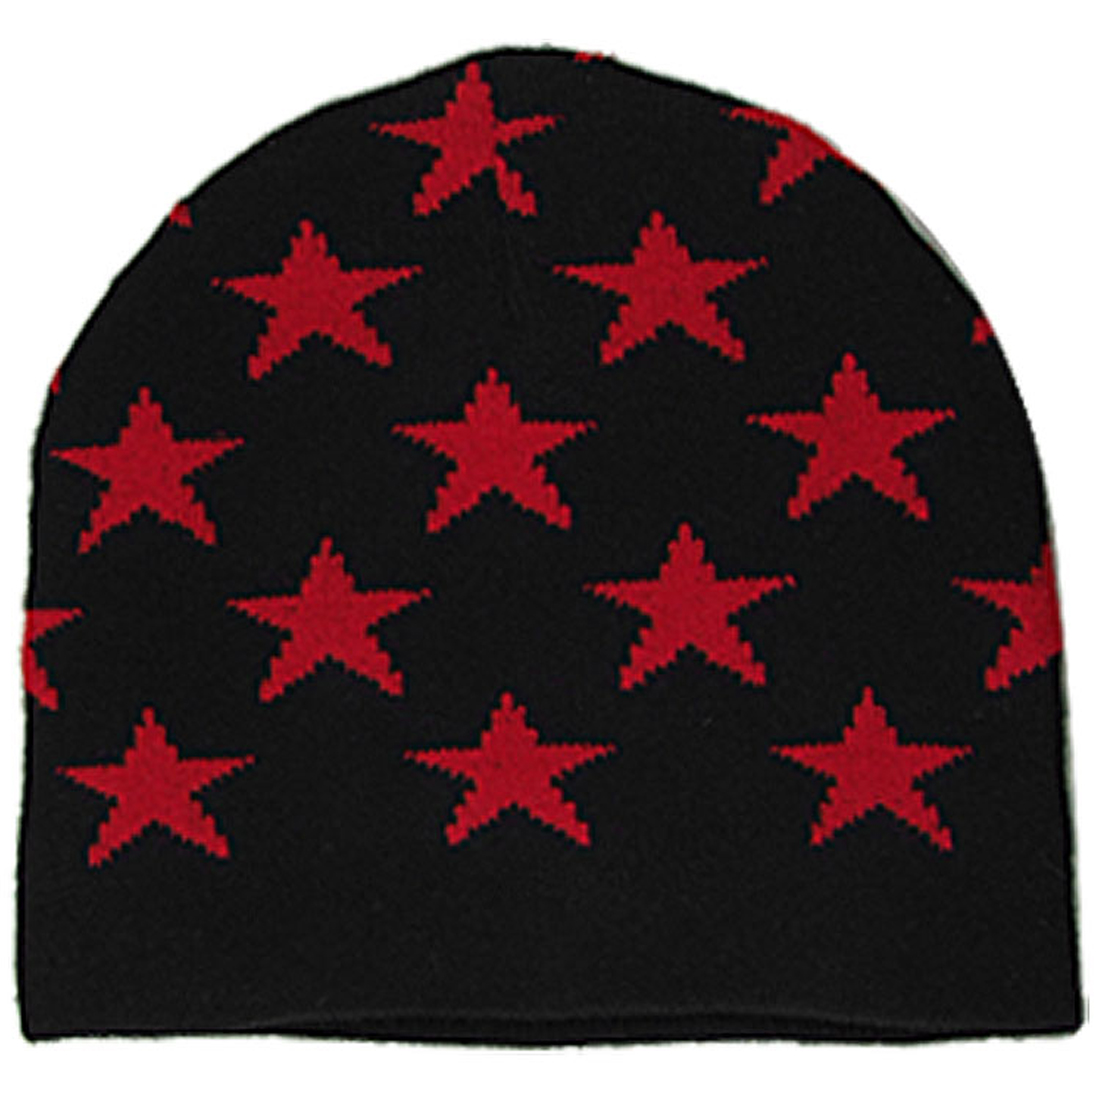 Children Red Stars Pattern Black Knitting Knit Beanie Hat Cap